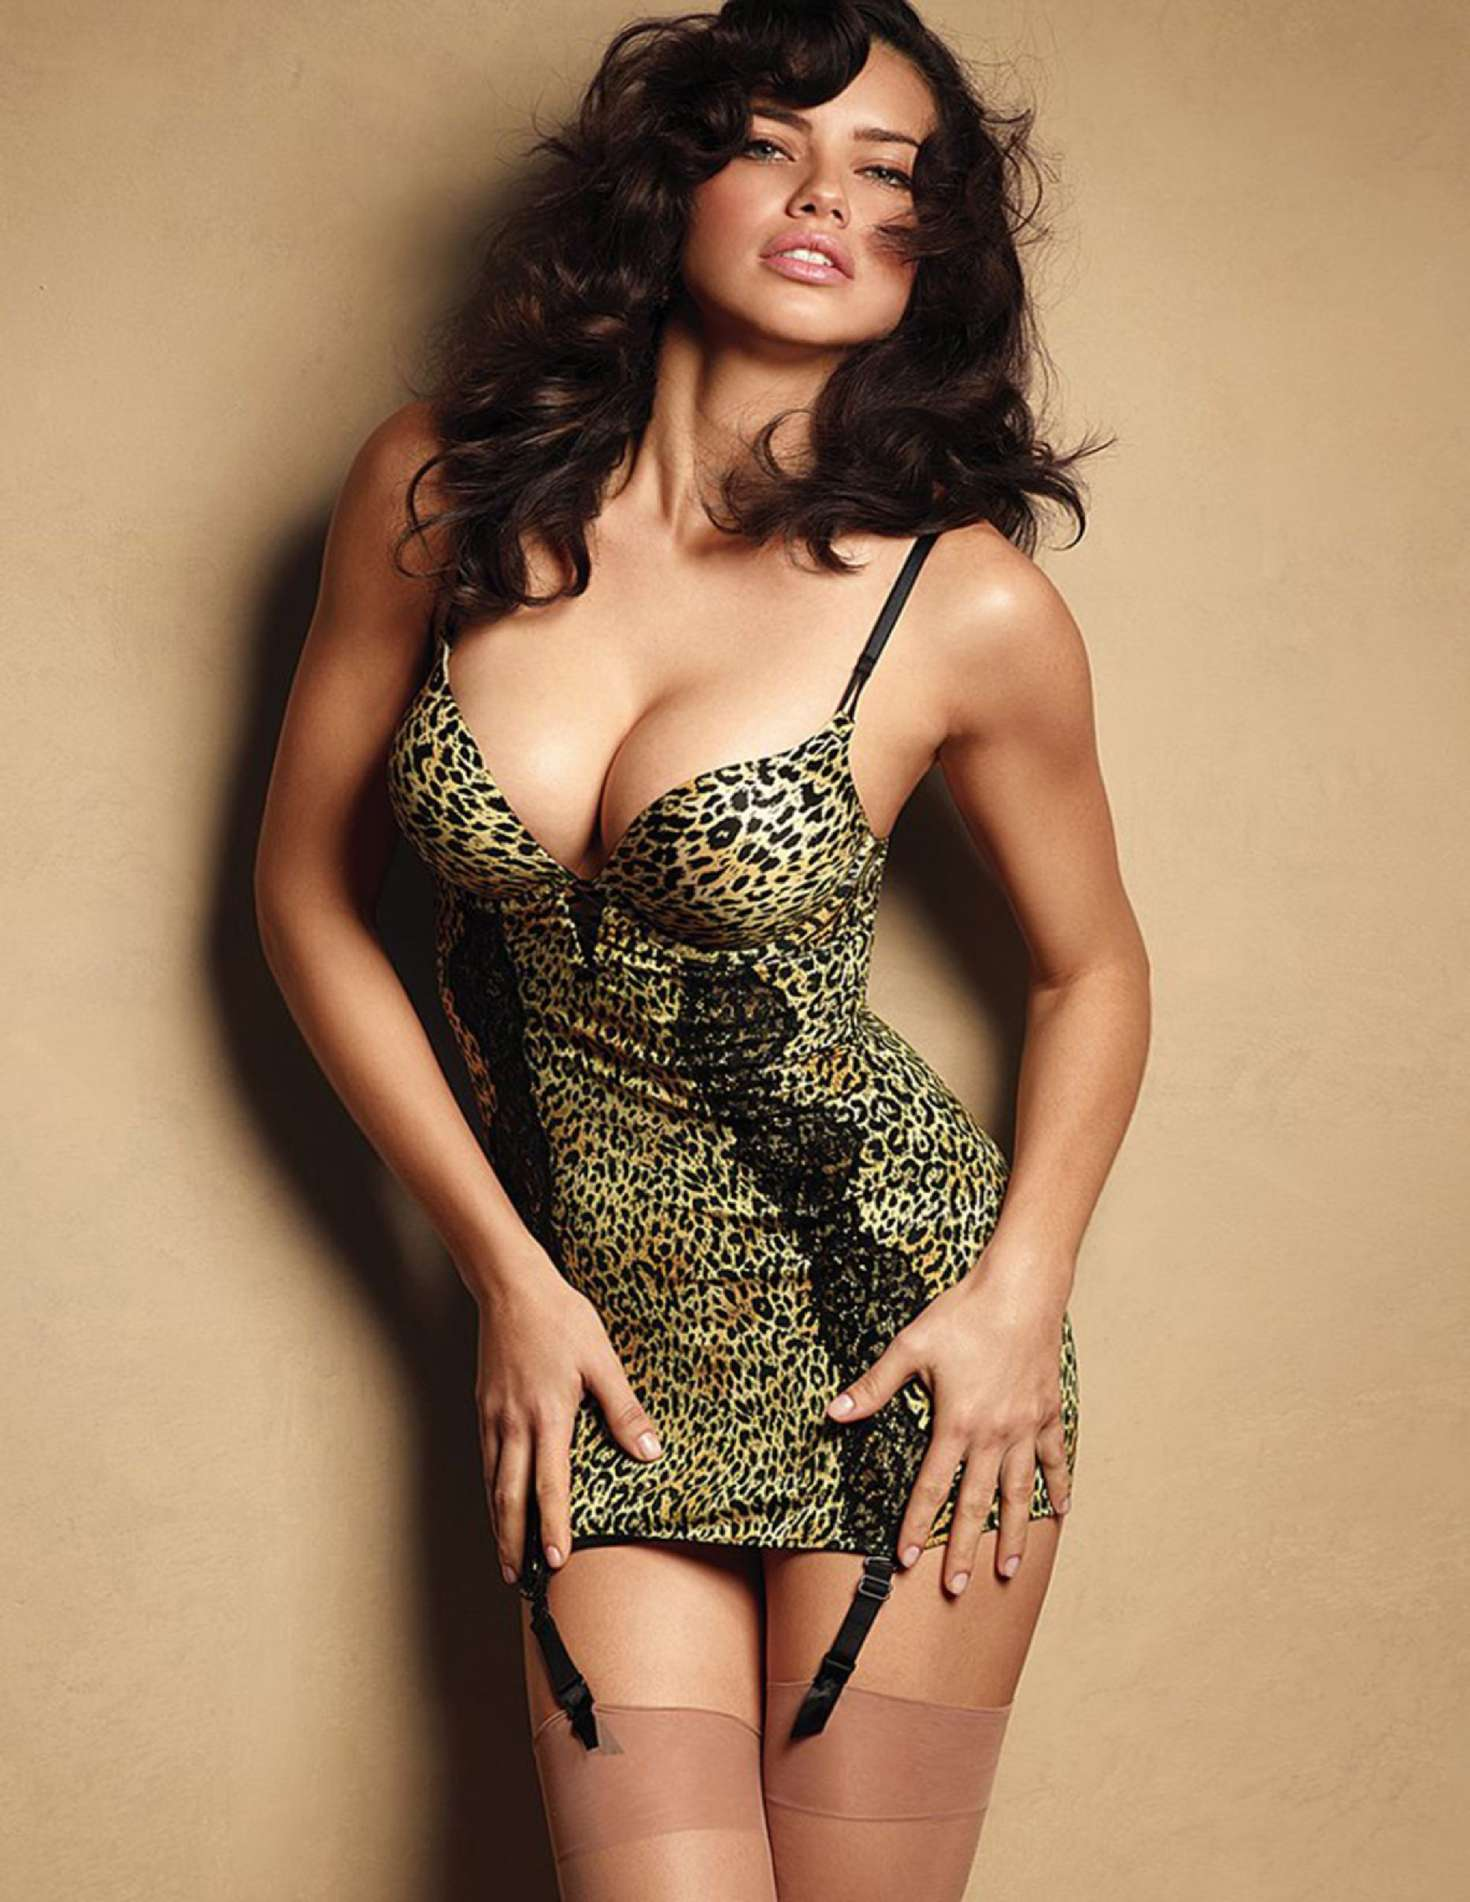 Hot Pics Of Adriana Lima